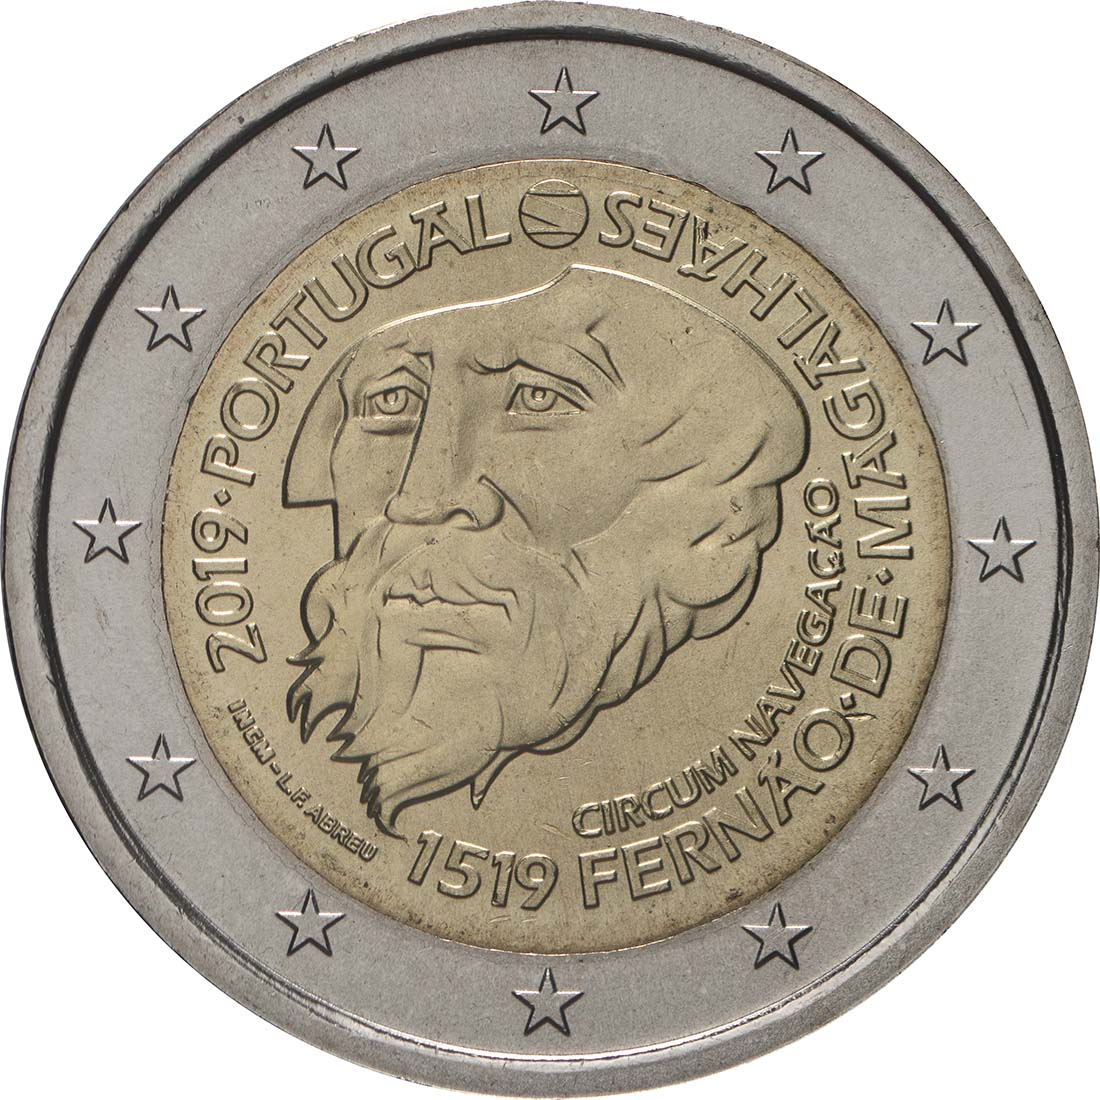 2019 342 Portugal Magallan.jpg